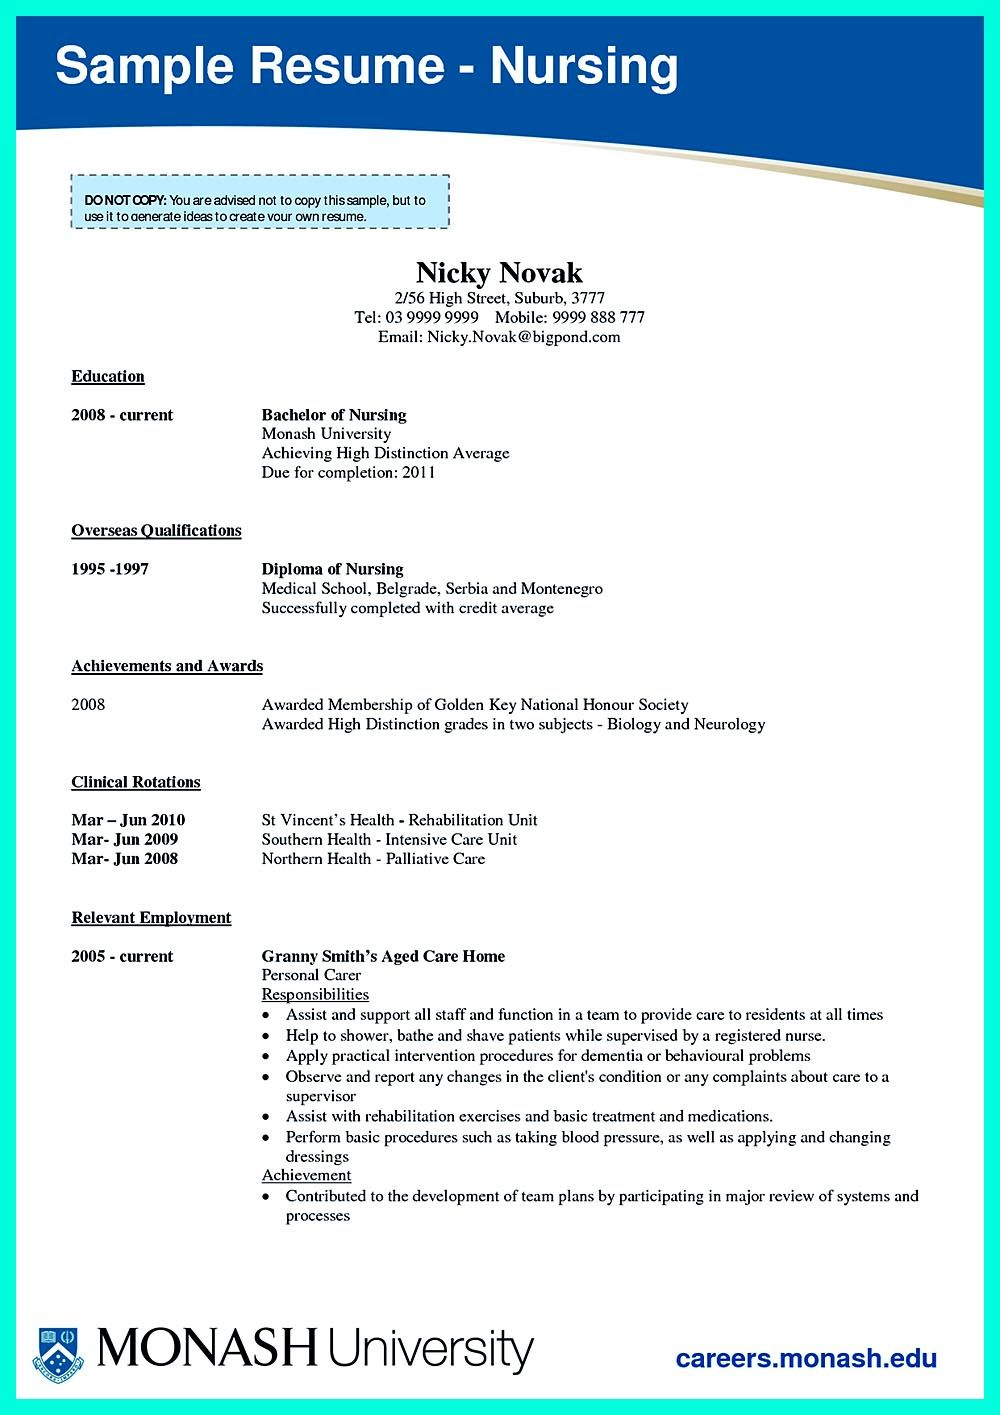 Critical Care Nurse Resume Has Skills Or Objectives That Are Written To  Document Clearly About Your  Critical Care Nursing Resume